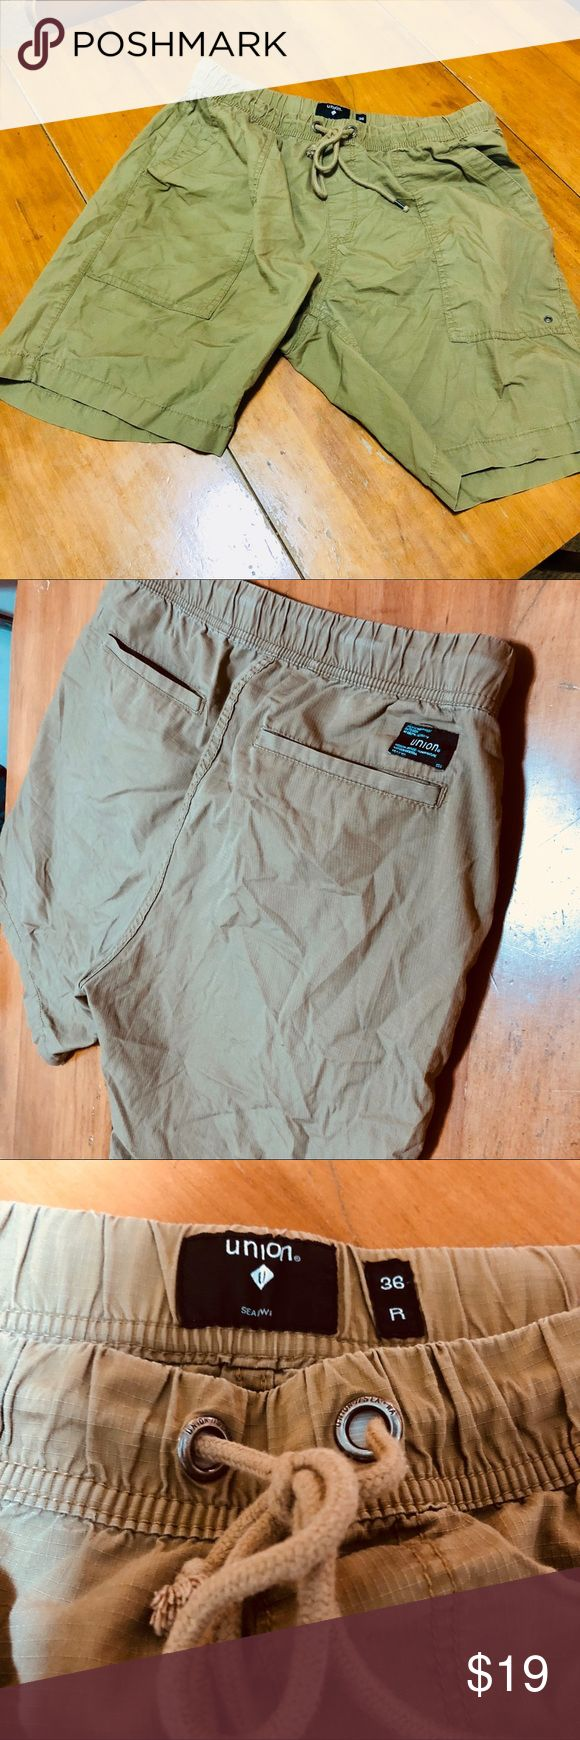 Classic Union Board Shorts Beige board shorts that have no signs of wear. Slight wrinkles are apart of style but can iron if needed before shipping. Australian made company, Union, is a popular skate and surf clothing store. ASOS Shorts